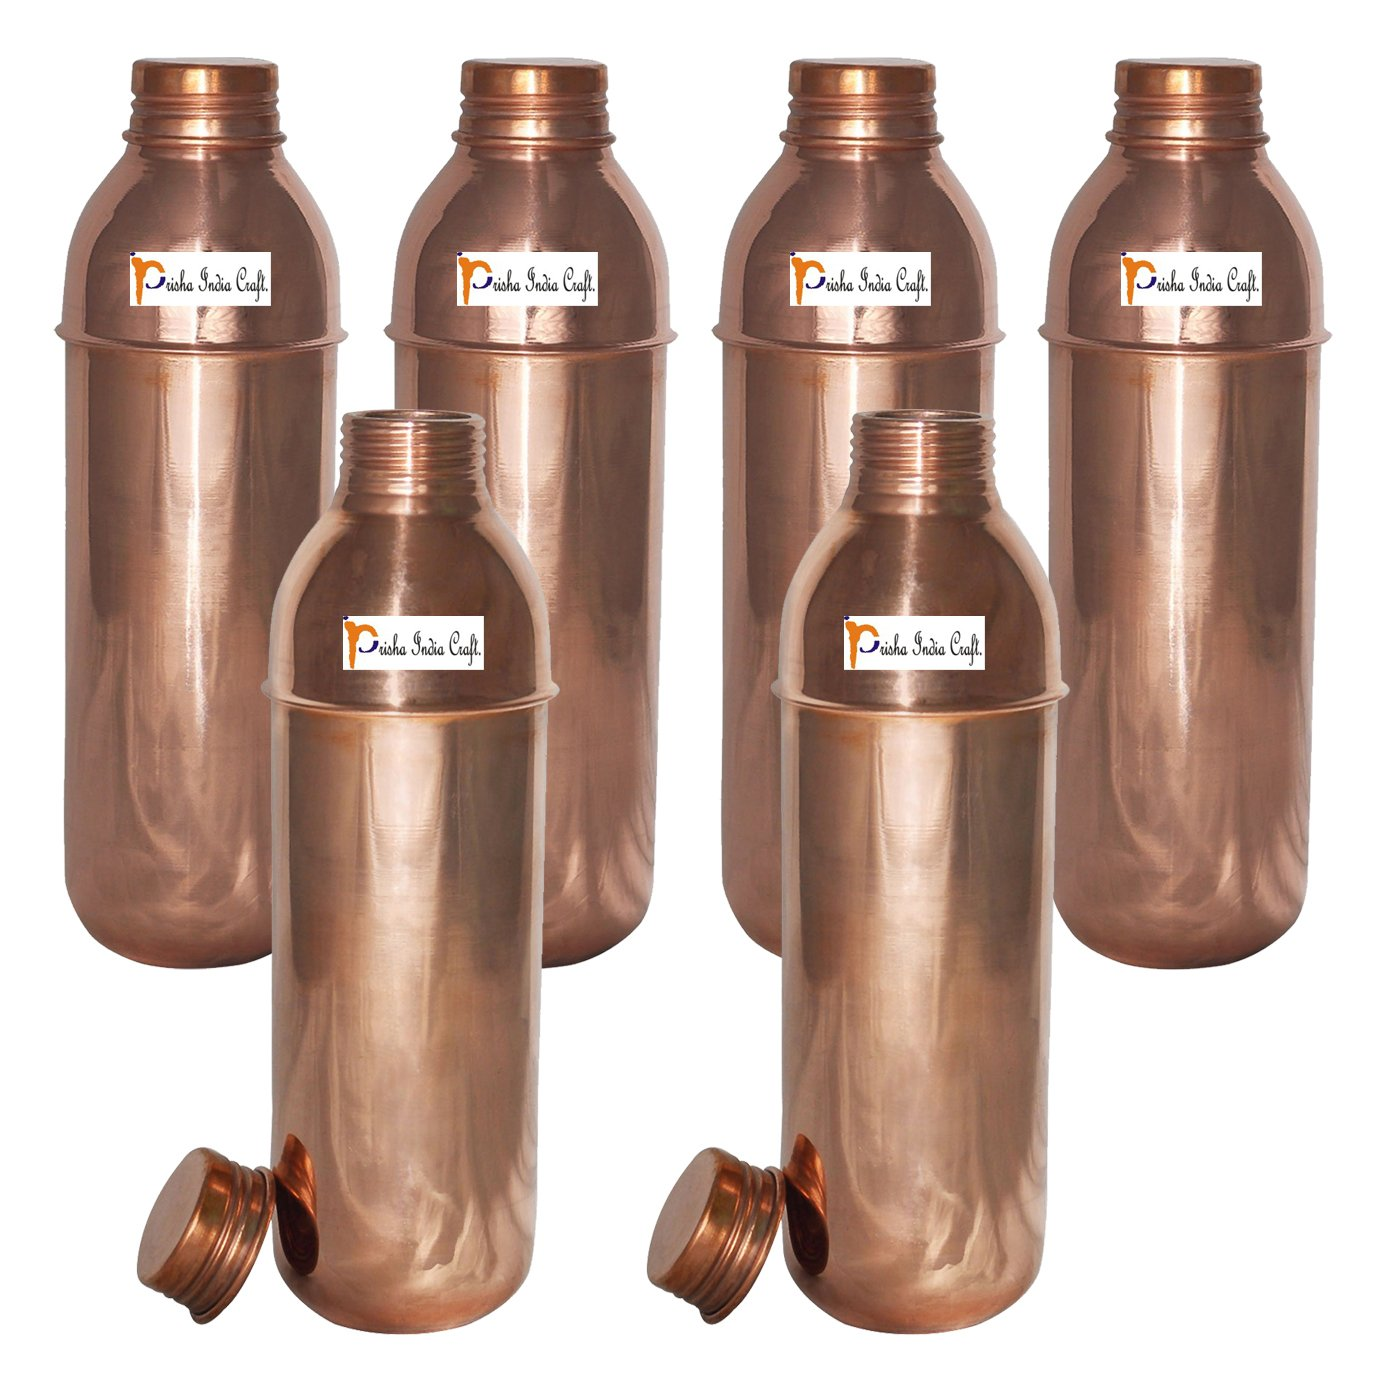 800ml / 27oz - Set of 6 - Prisha India Craft Copper New Bislery Bottle with benefited - Pitcher Bottles - Best Quality Water Bottles - Indian Water Carafe - Handmade Christmas Gift Item